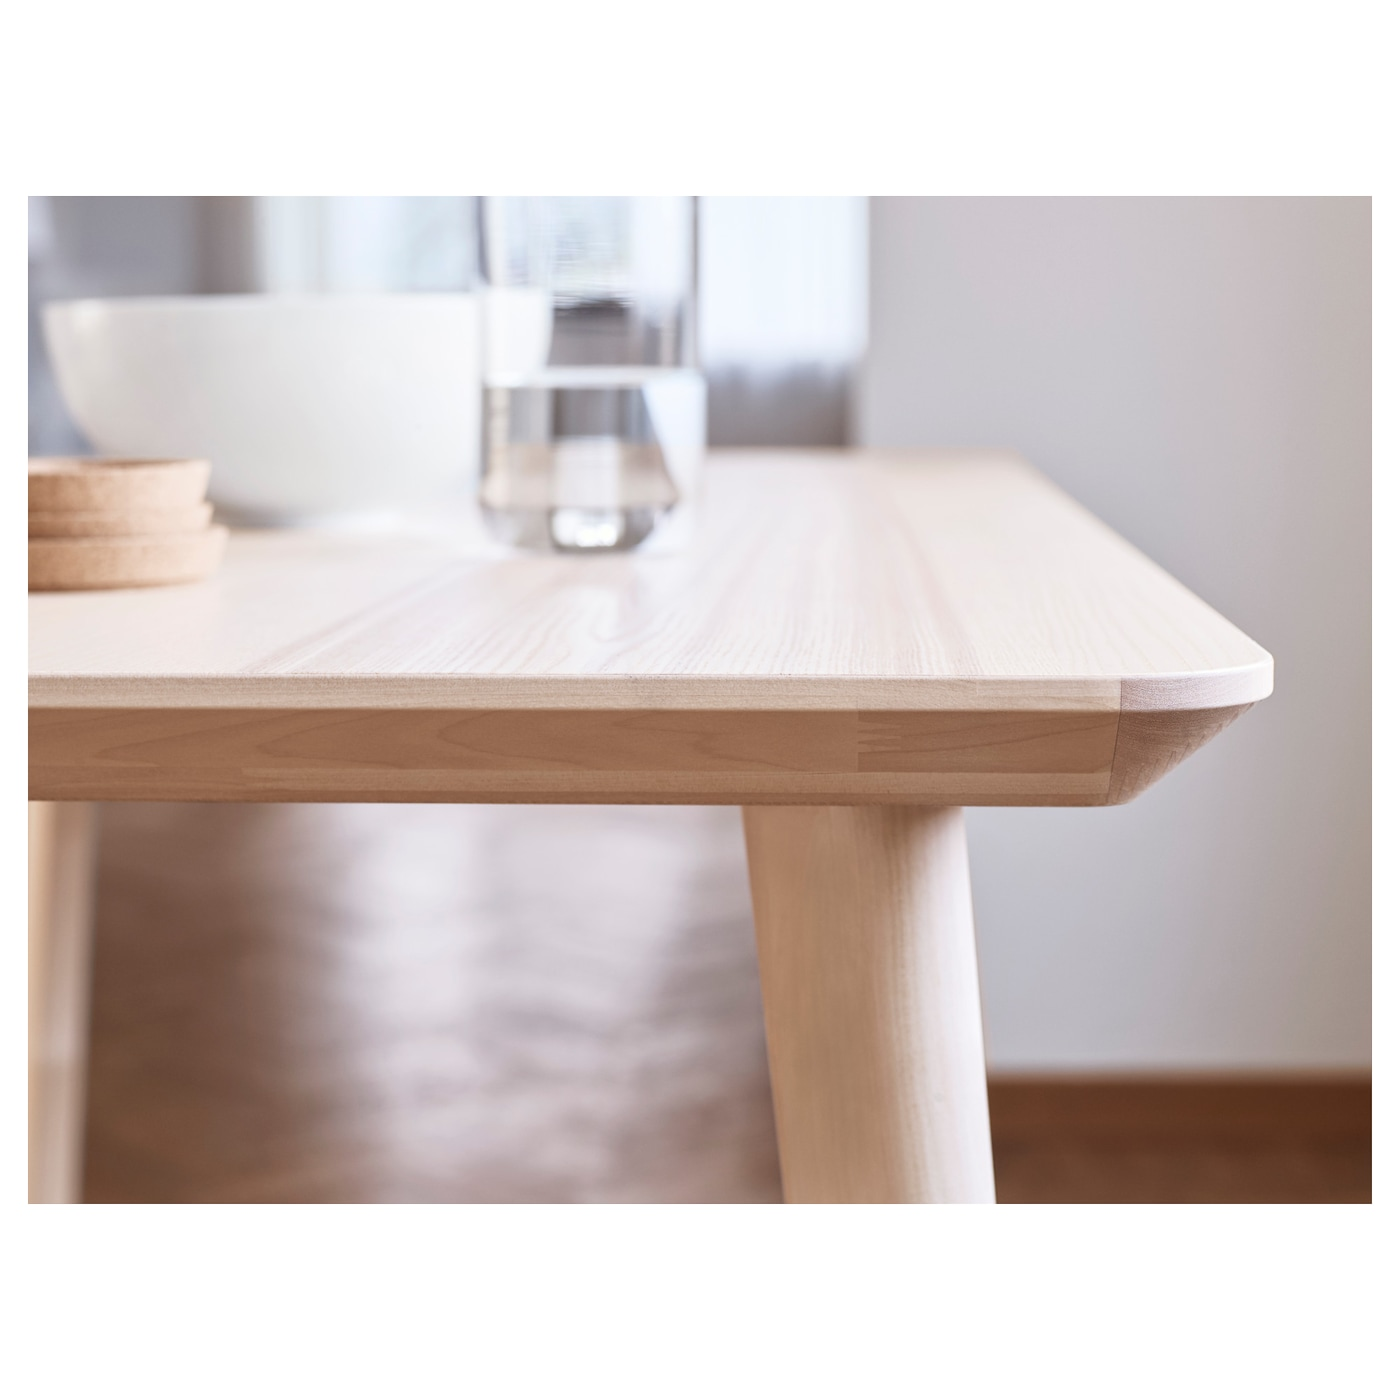 Lisabo coffee table ash veneer 70x70 cm ikea - Table basse chez ikea ...